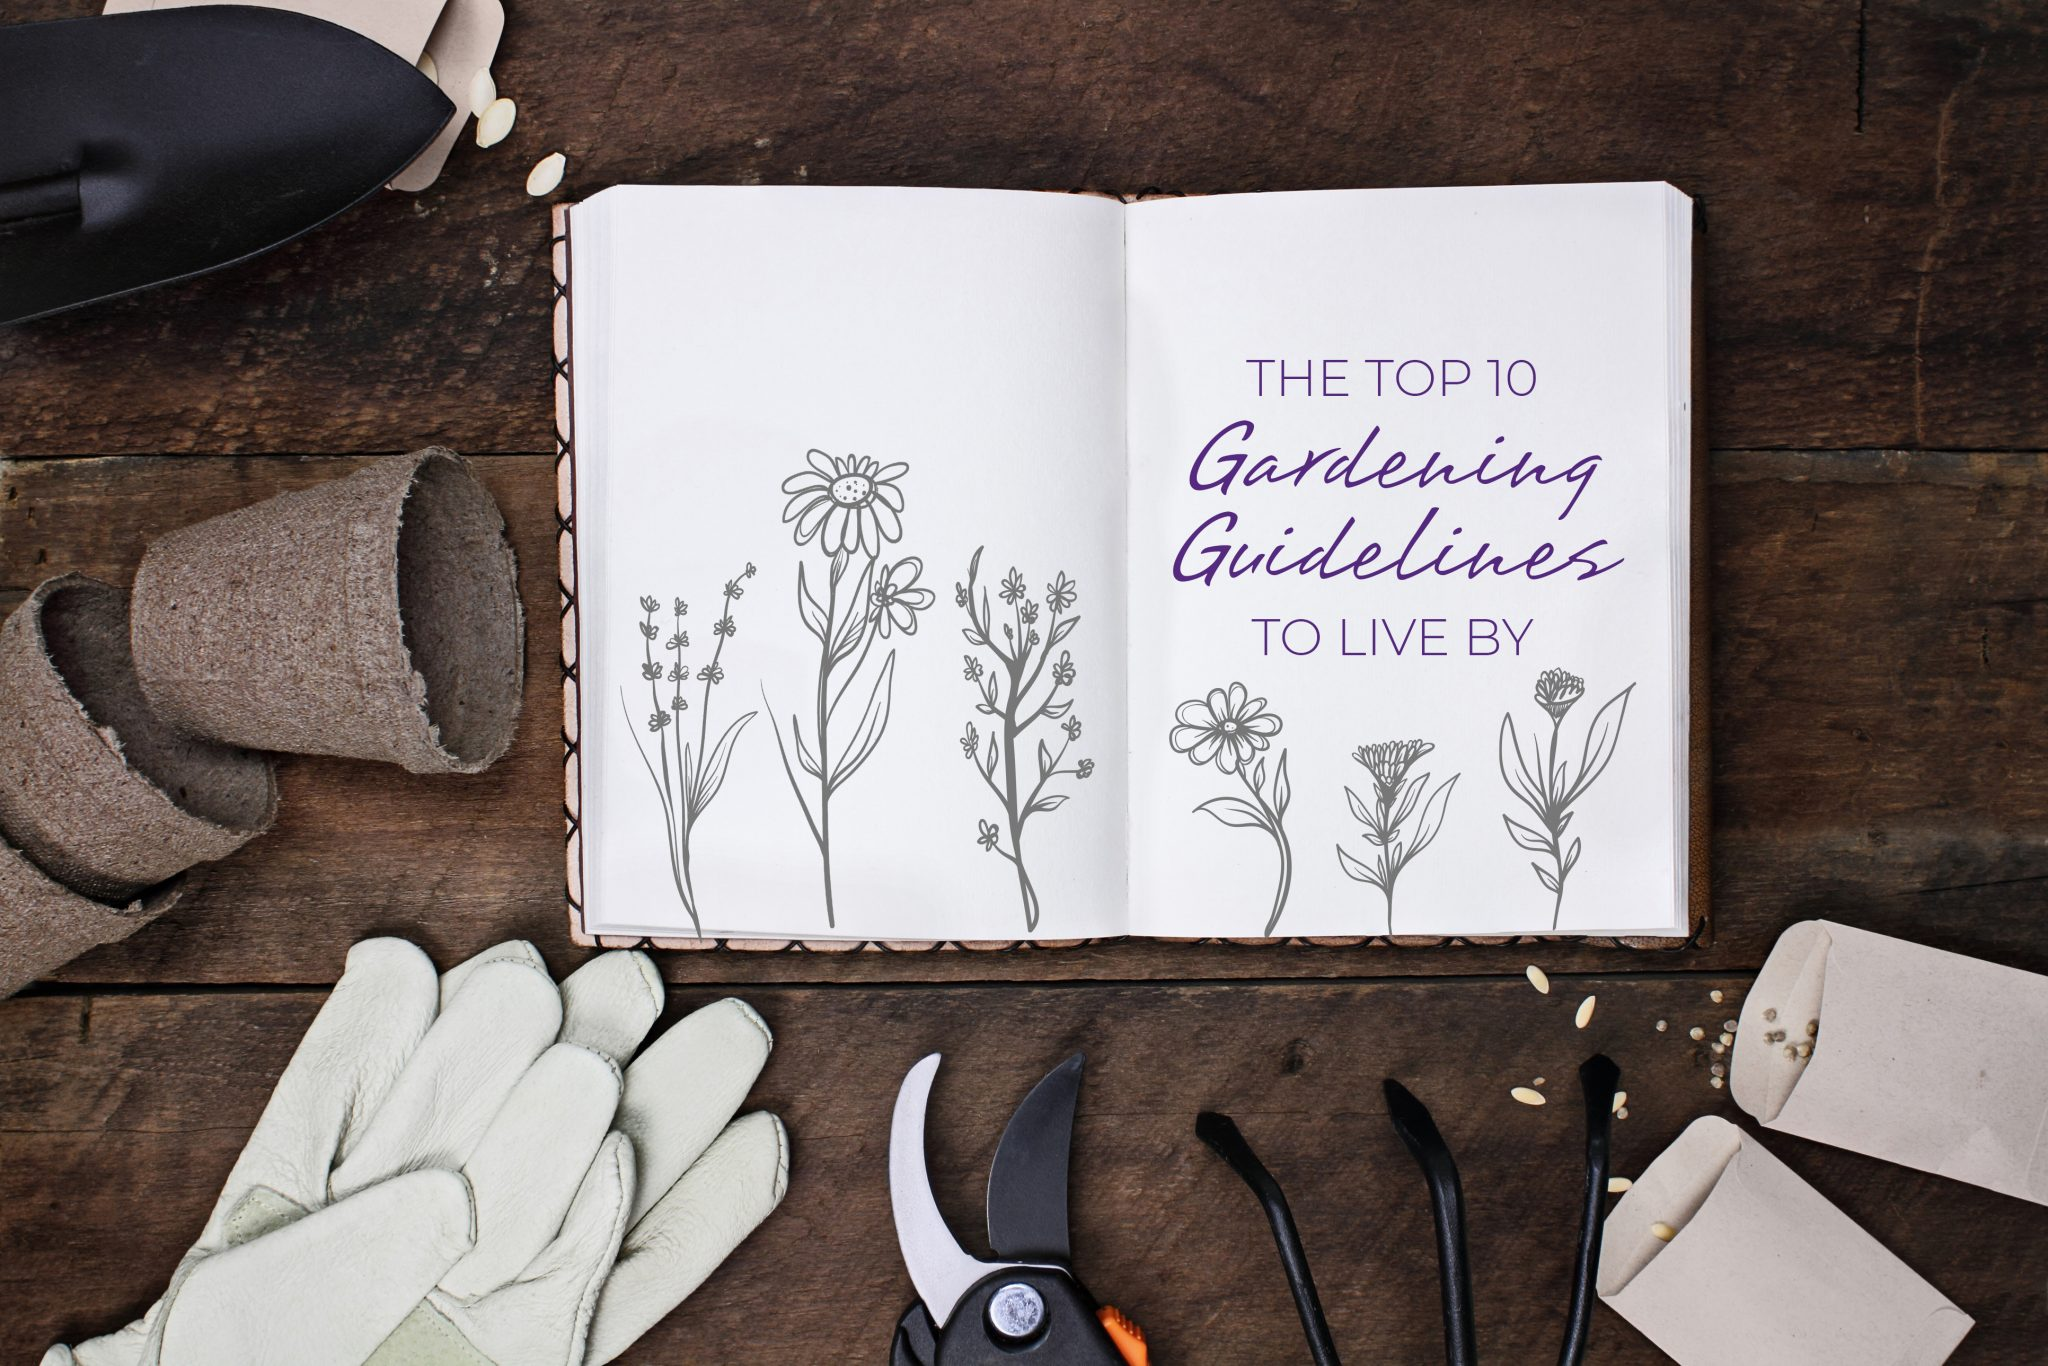 Gardening journal for the 'Resilient Gardener, featuring the top 10 Adaptive Gardening Guidelines